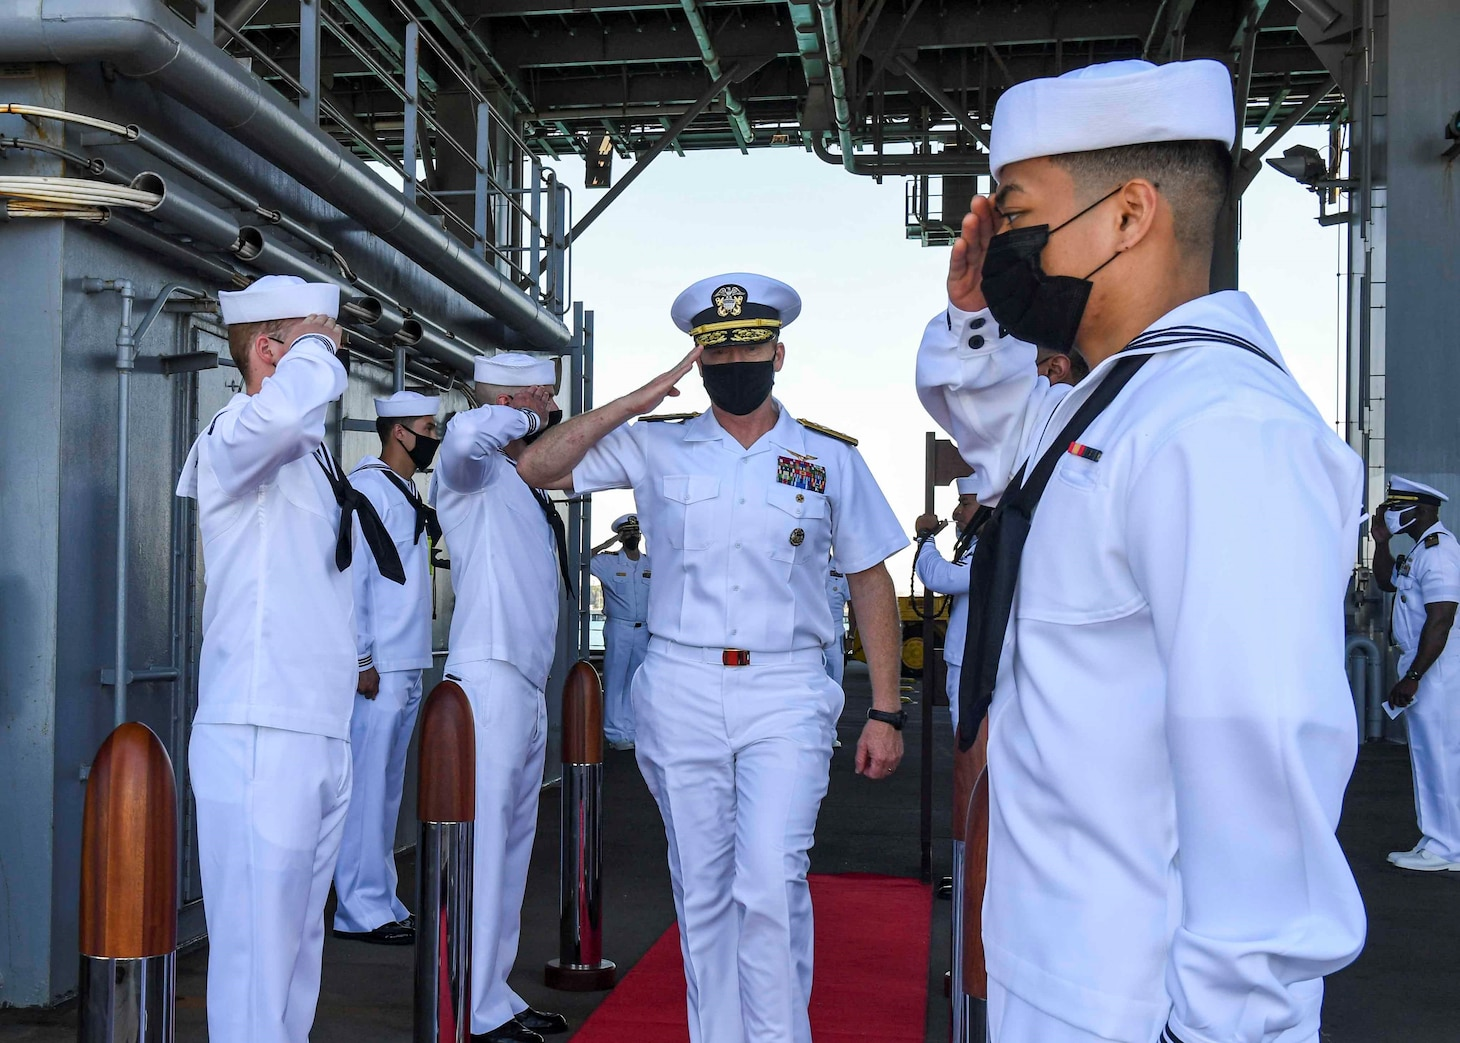 """(July 8, 2021) Rear Admiral Ben Reynolds, Director of Maritime Headquarters, U.S. Naval Forces 6th Fleet, walks through the side boys after receiving a tour aboard the Expeditionary Sea Base USS Hershel """"Woody"""" Williams (ESB 4) in the Atlantic Ocean, July 8, 2021. Hershel """"Woody"""" Williams is on a scheduled deployment in the U.S. Sixth Fleet area of operations in support of U.S. national interests and security in Europe and Africa."""